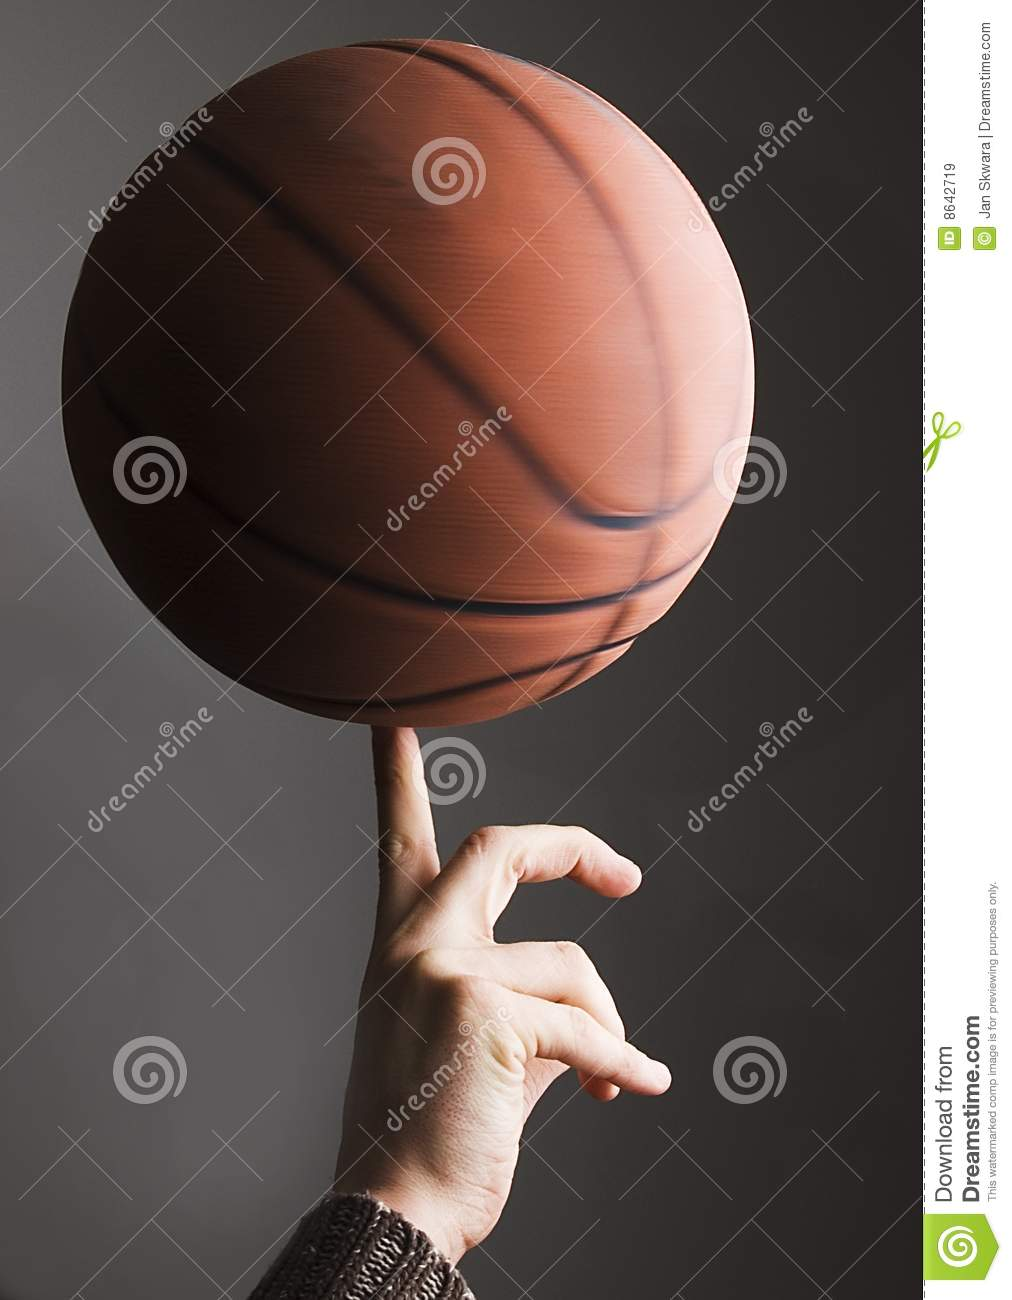 Basketbalrollen auf Finger